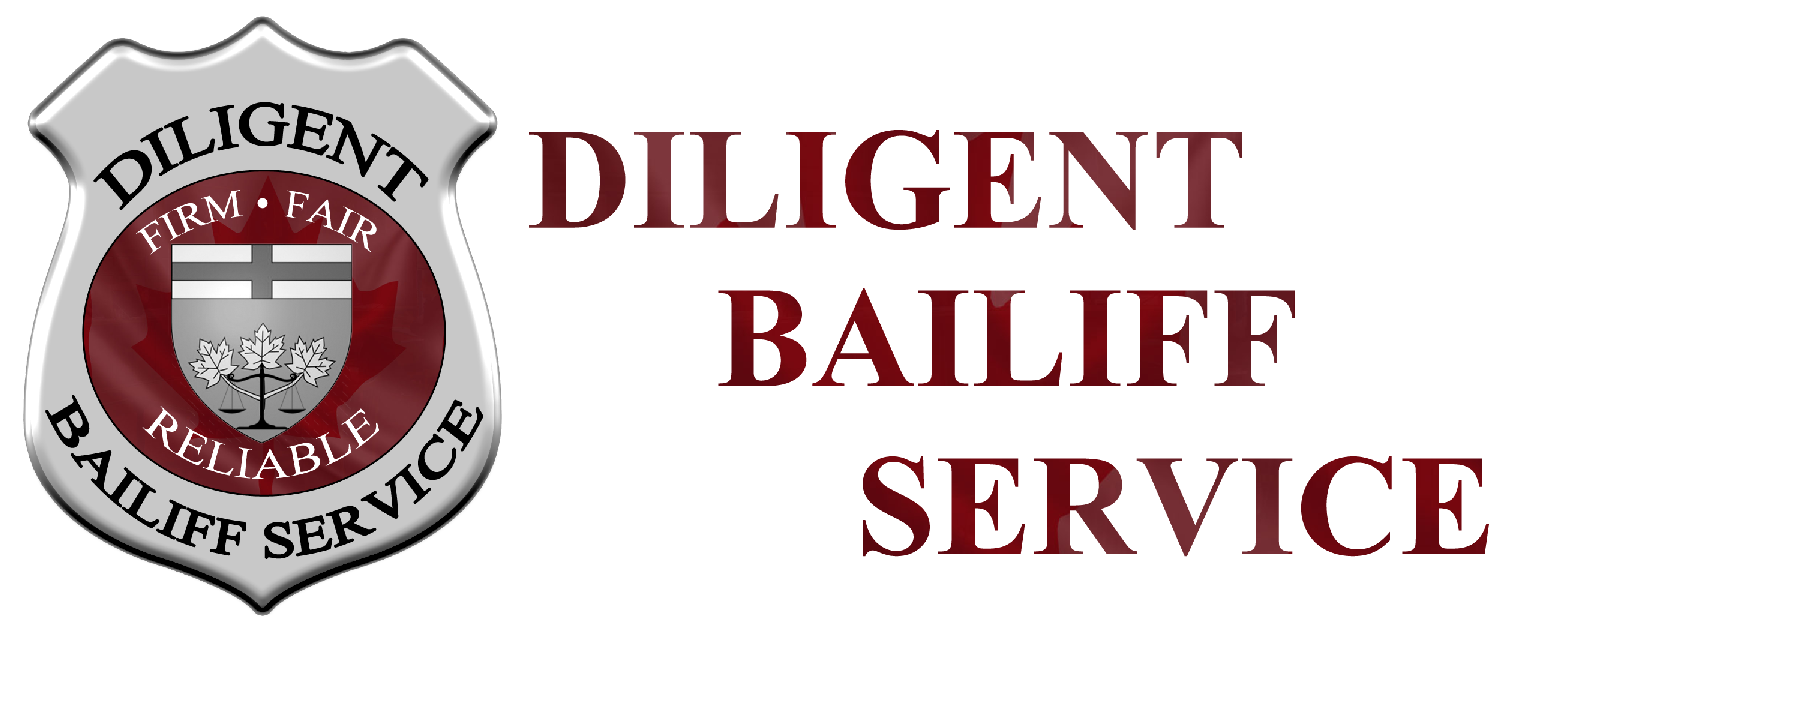 WHY DO I NEED TO USE A BAILIFF? | DILIGENT BAILIFF